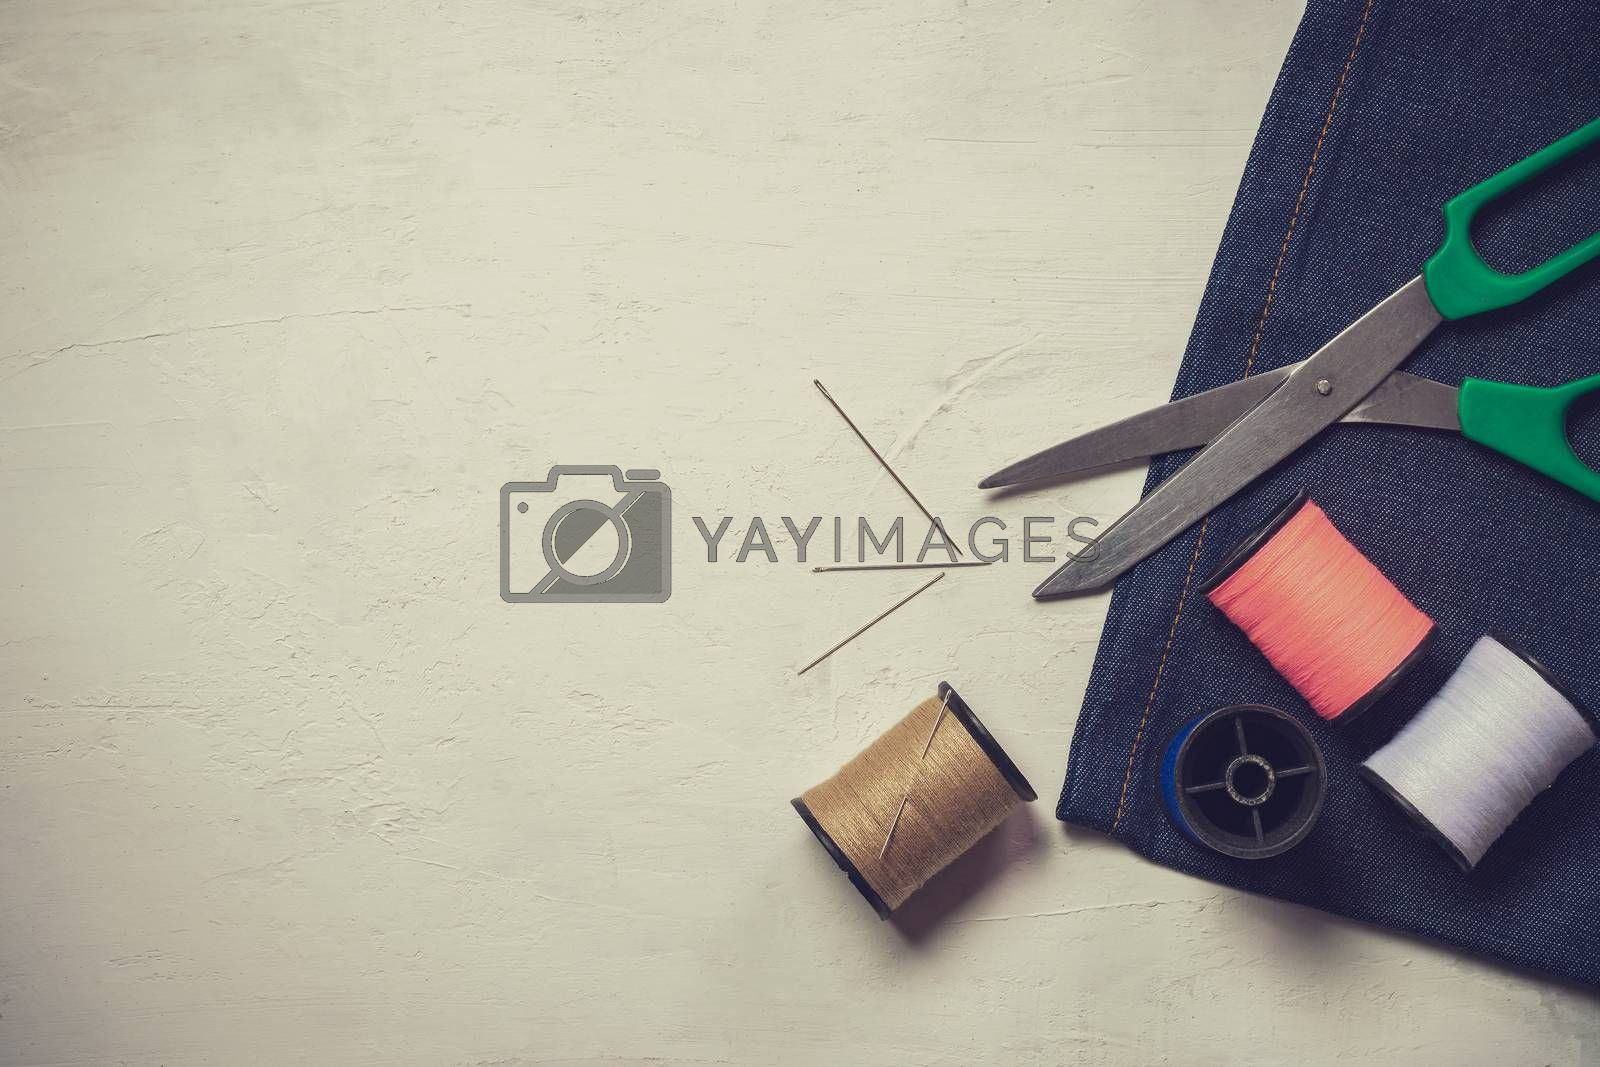 Royalty free image of Sewing tools and equipment on white wooden floor. Top view and c by SaitanSainam